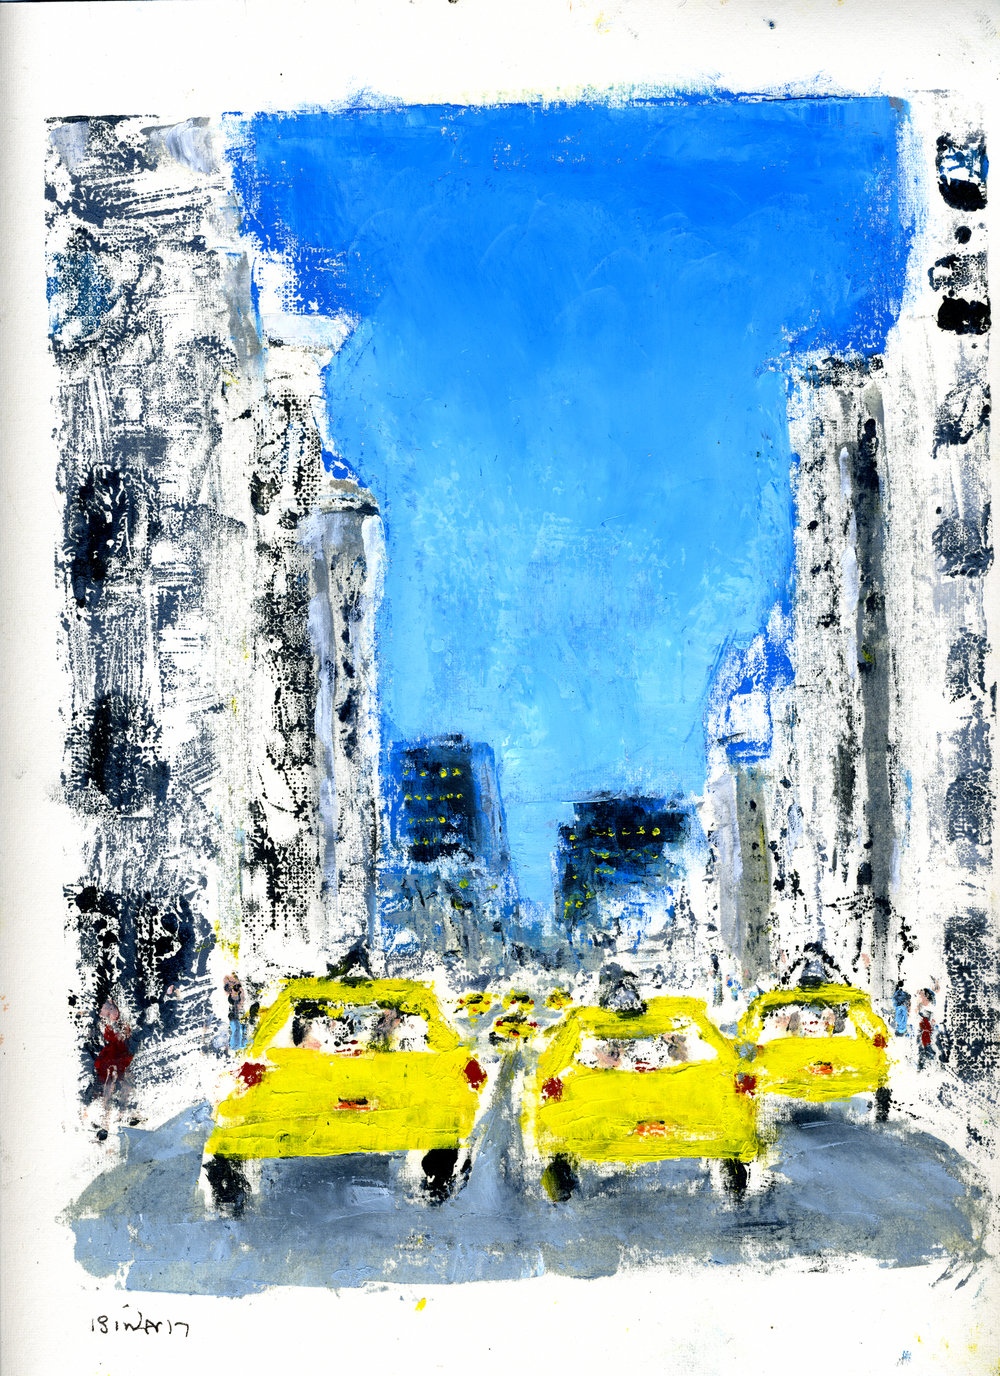 """7th Avenue (South) at 43rd Street   Hand-worked monotype in oil, 1st edition  12"""" x 9""""  $385  Click to Enlarge Image   Inquire."""